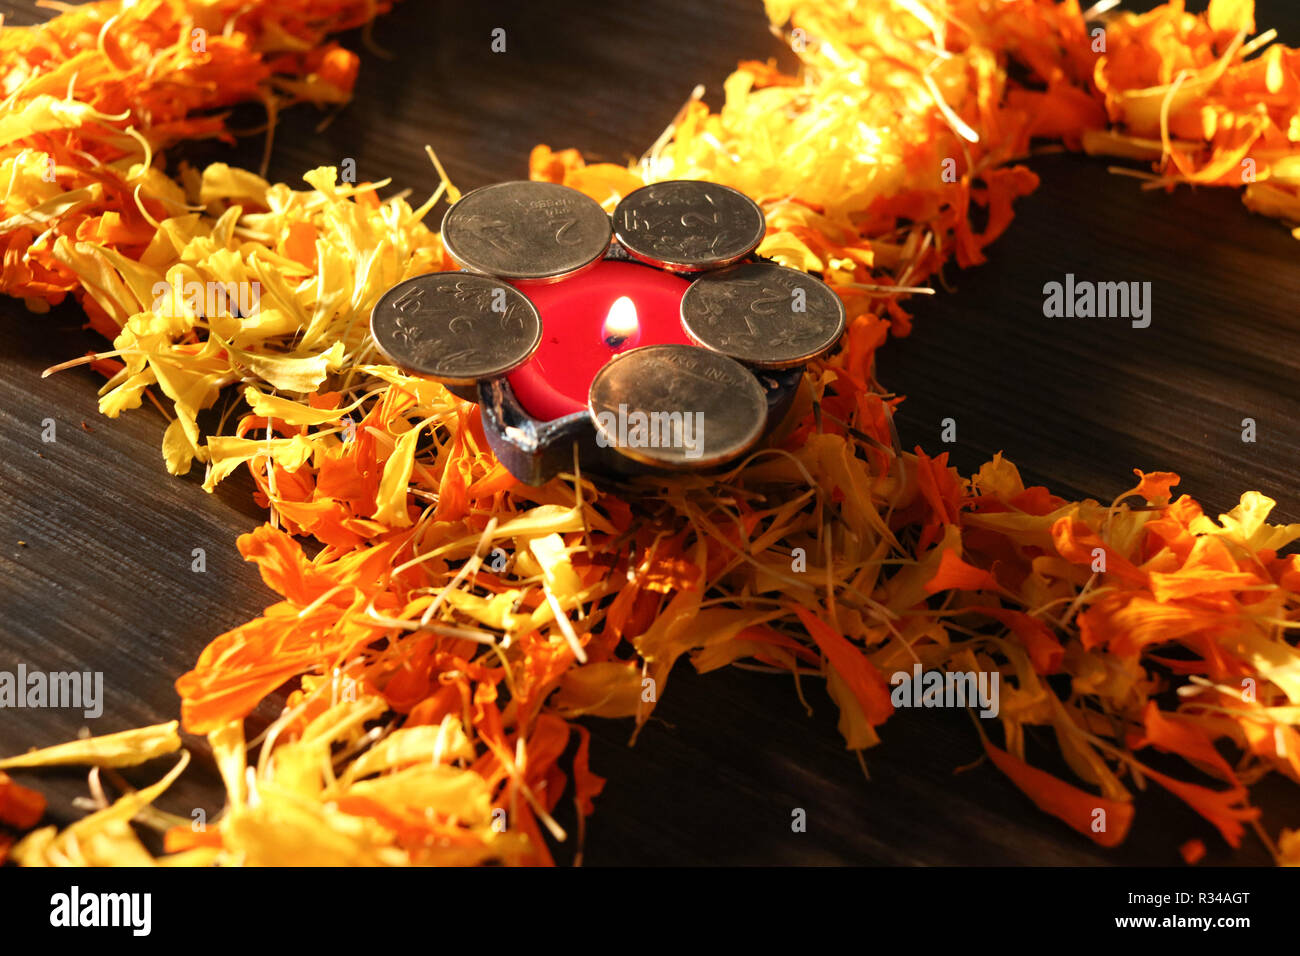 Isolated diya placed on swastik for celebrating diwali and dhanteras festival in India Stock Photo